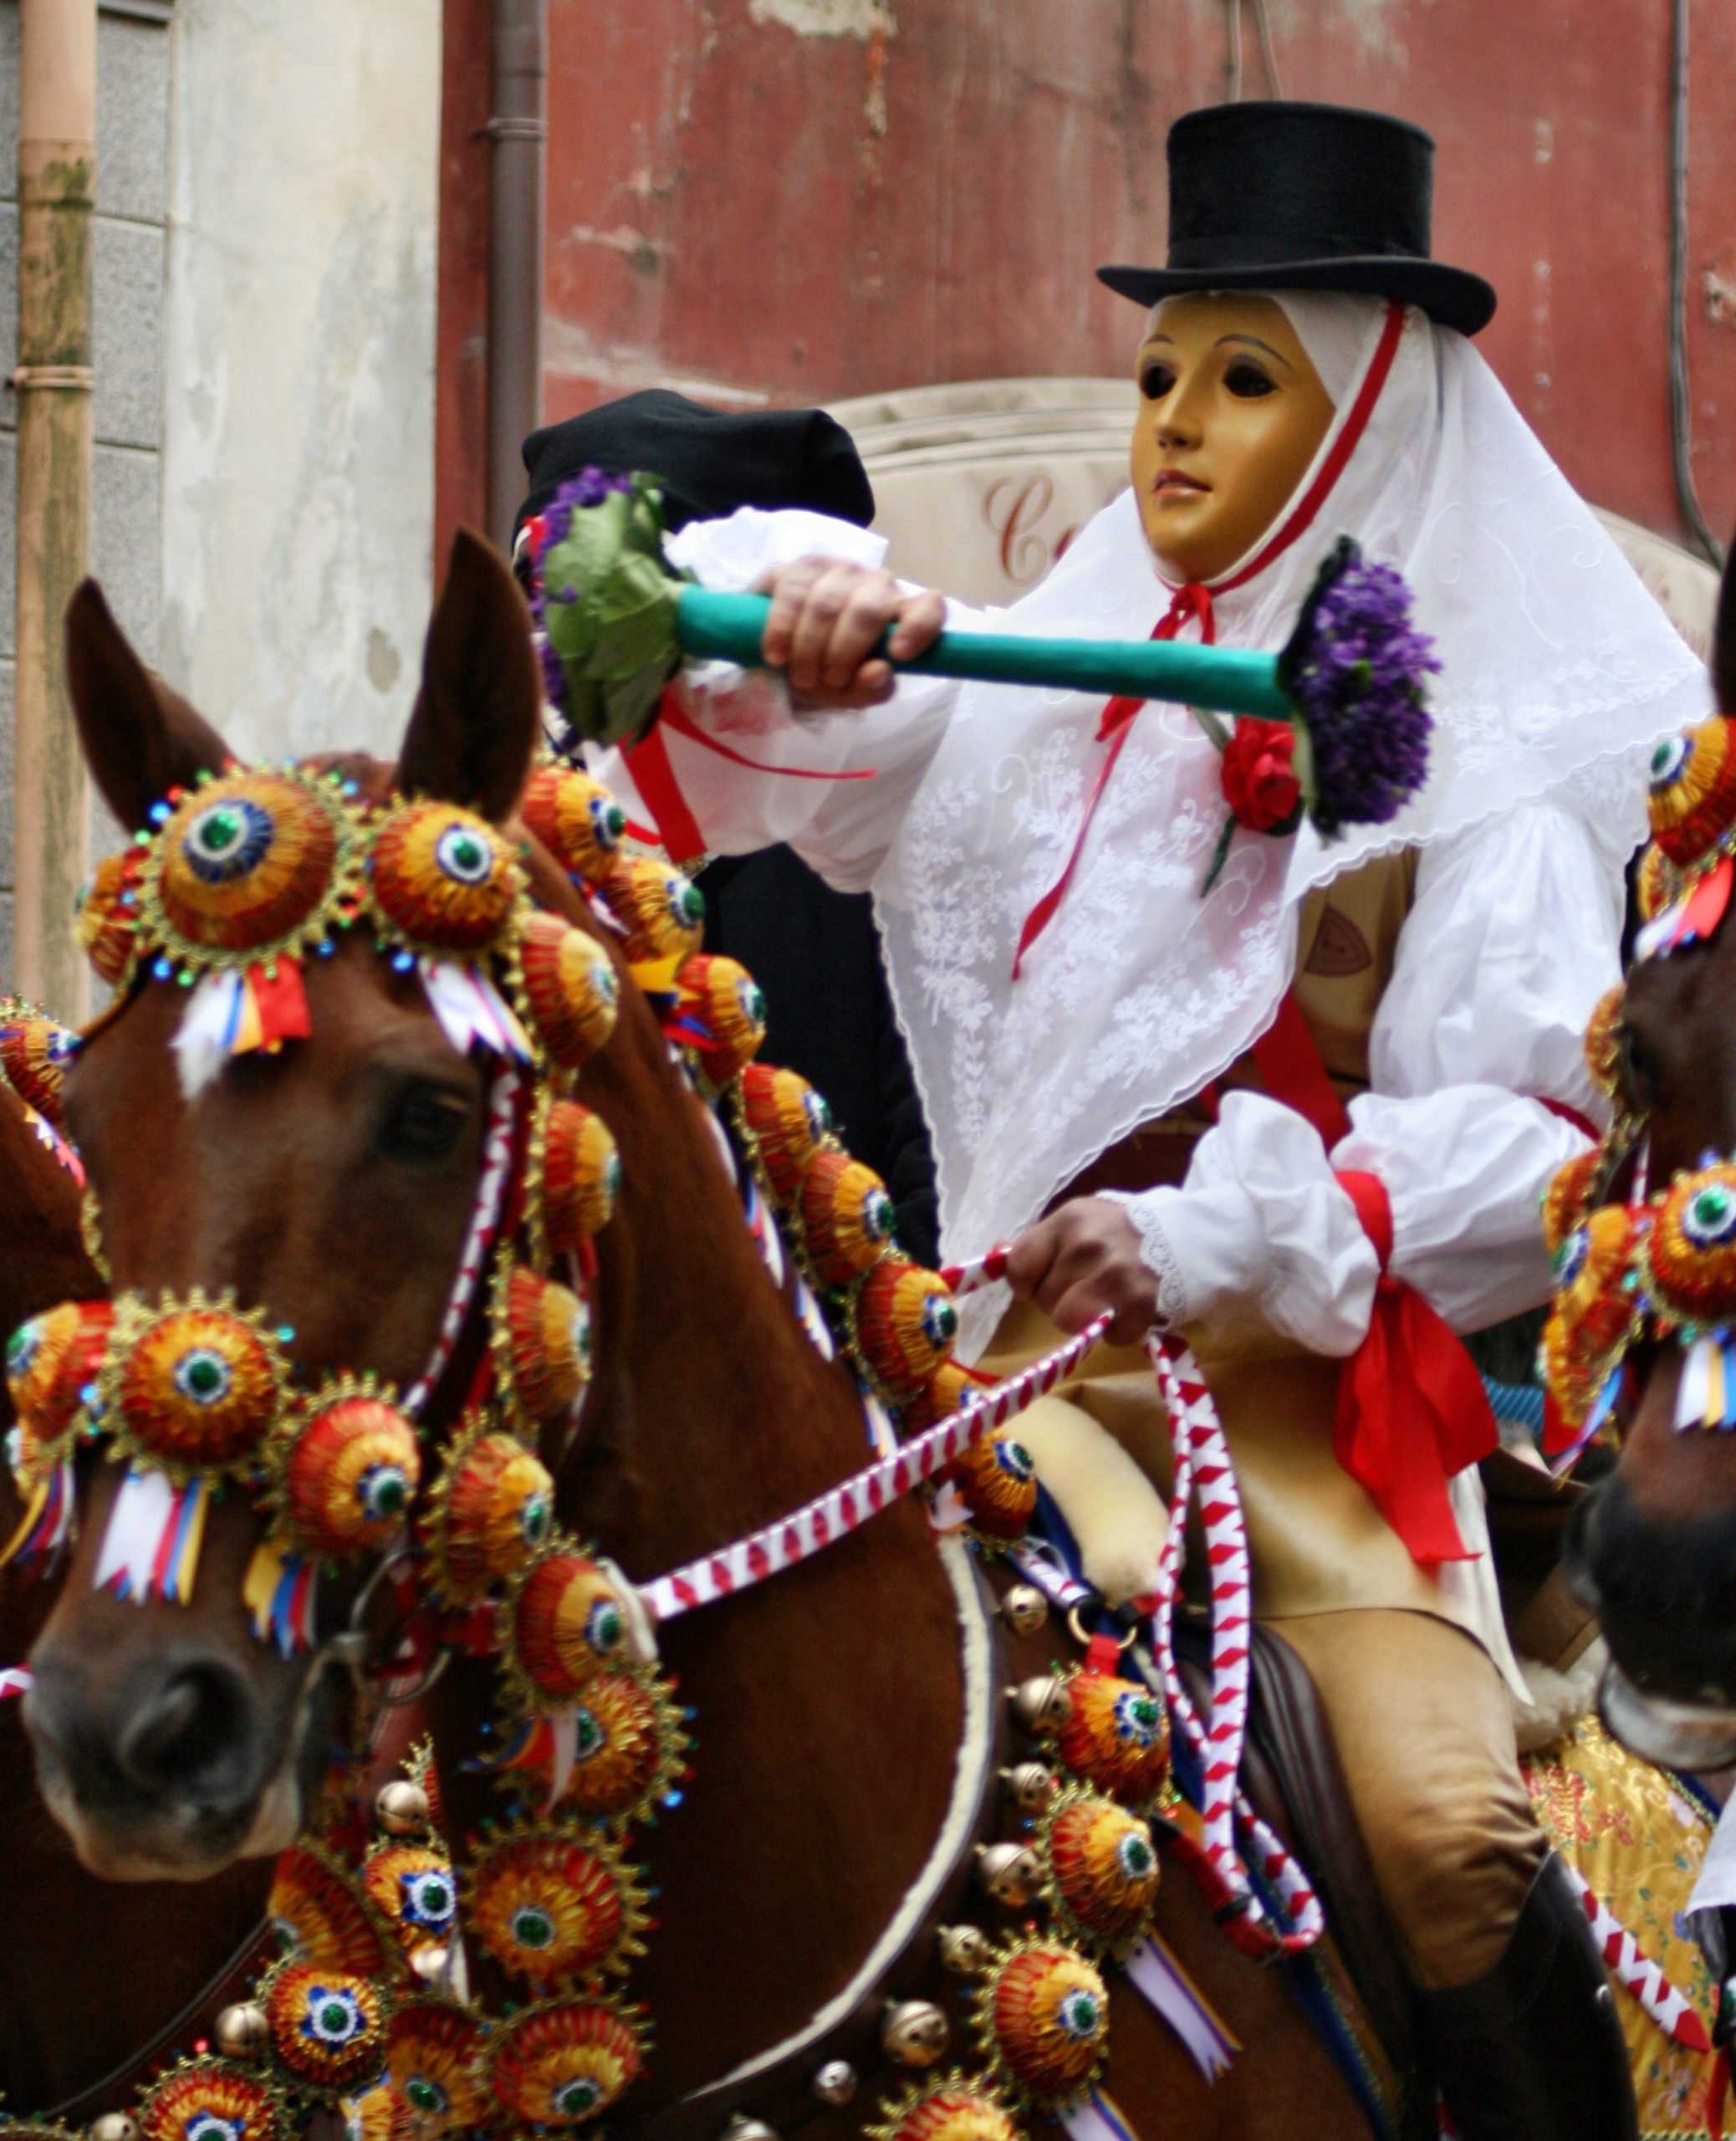 Man on horse dressed up in traditional costumes at the Carnival festival of Sartiglia in Sardinia